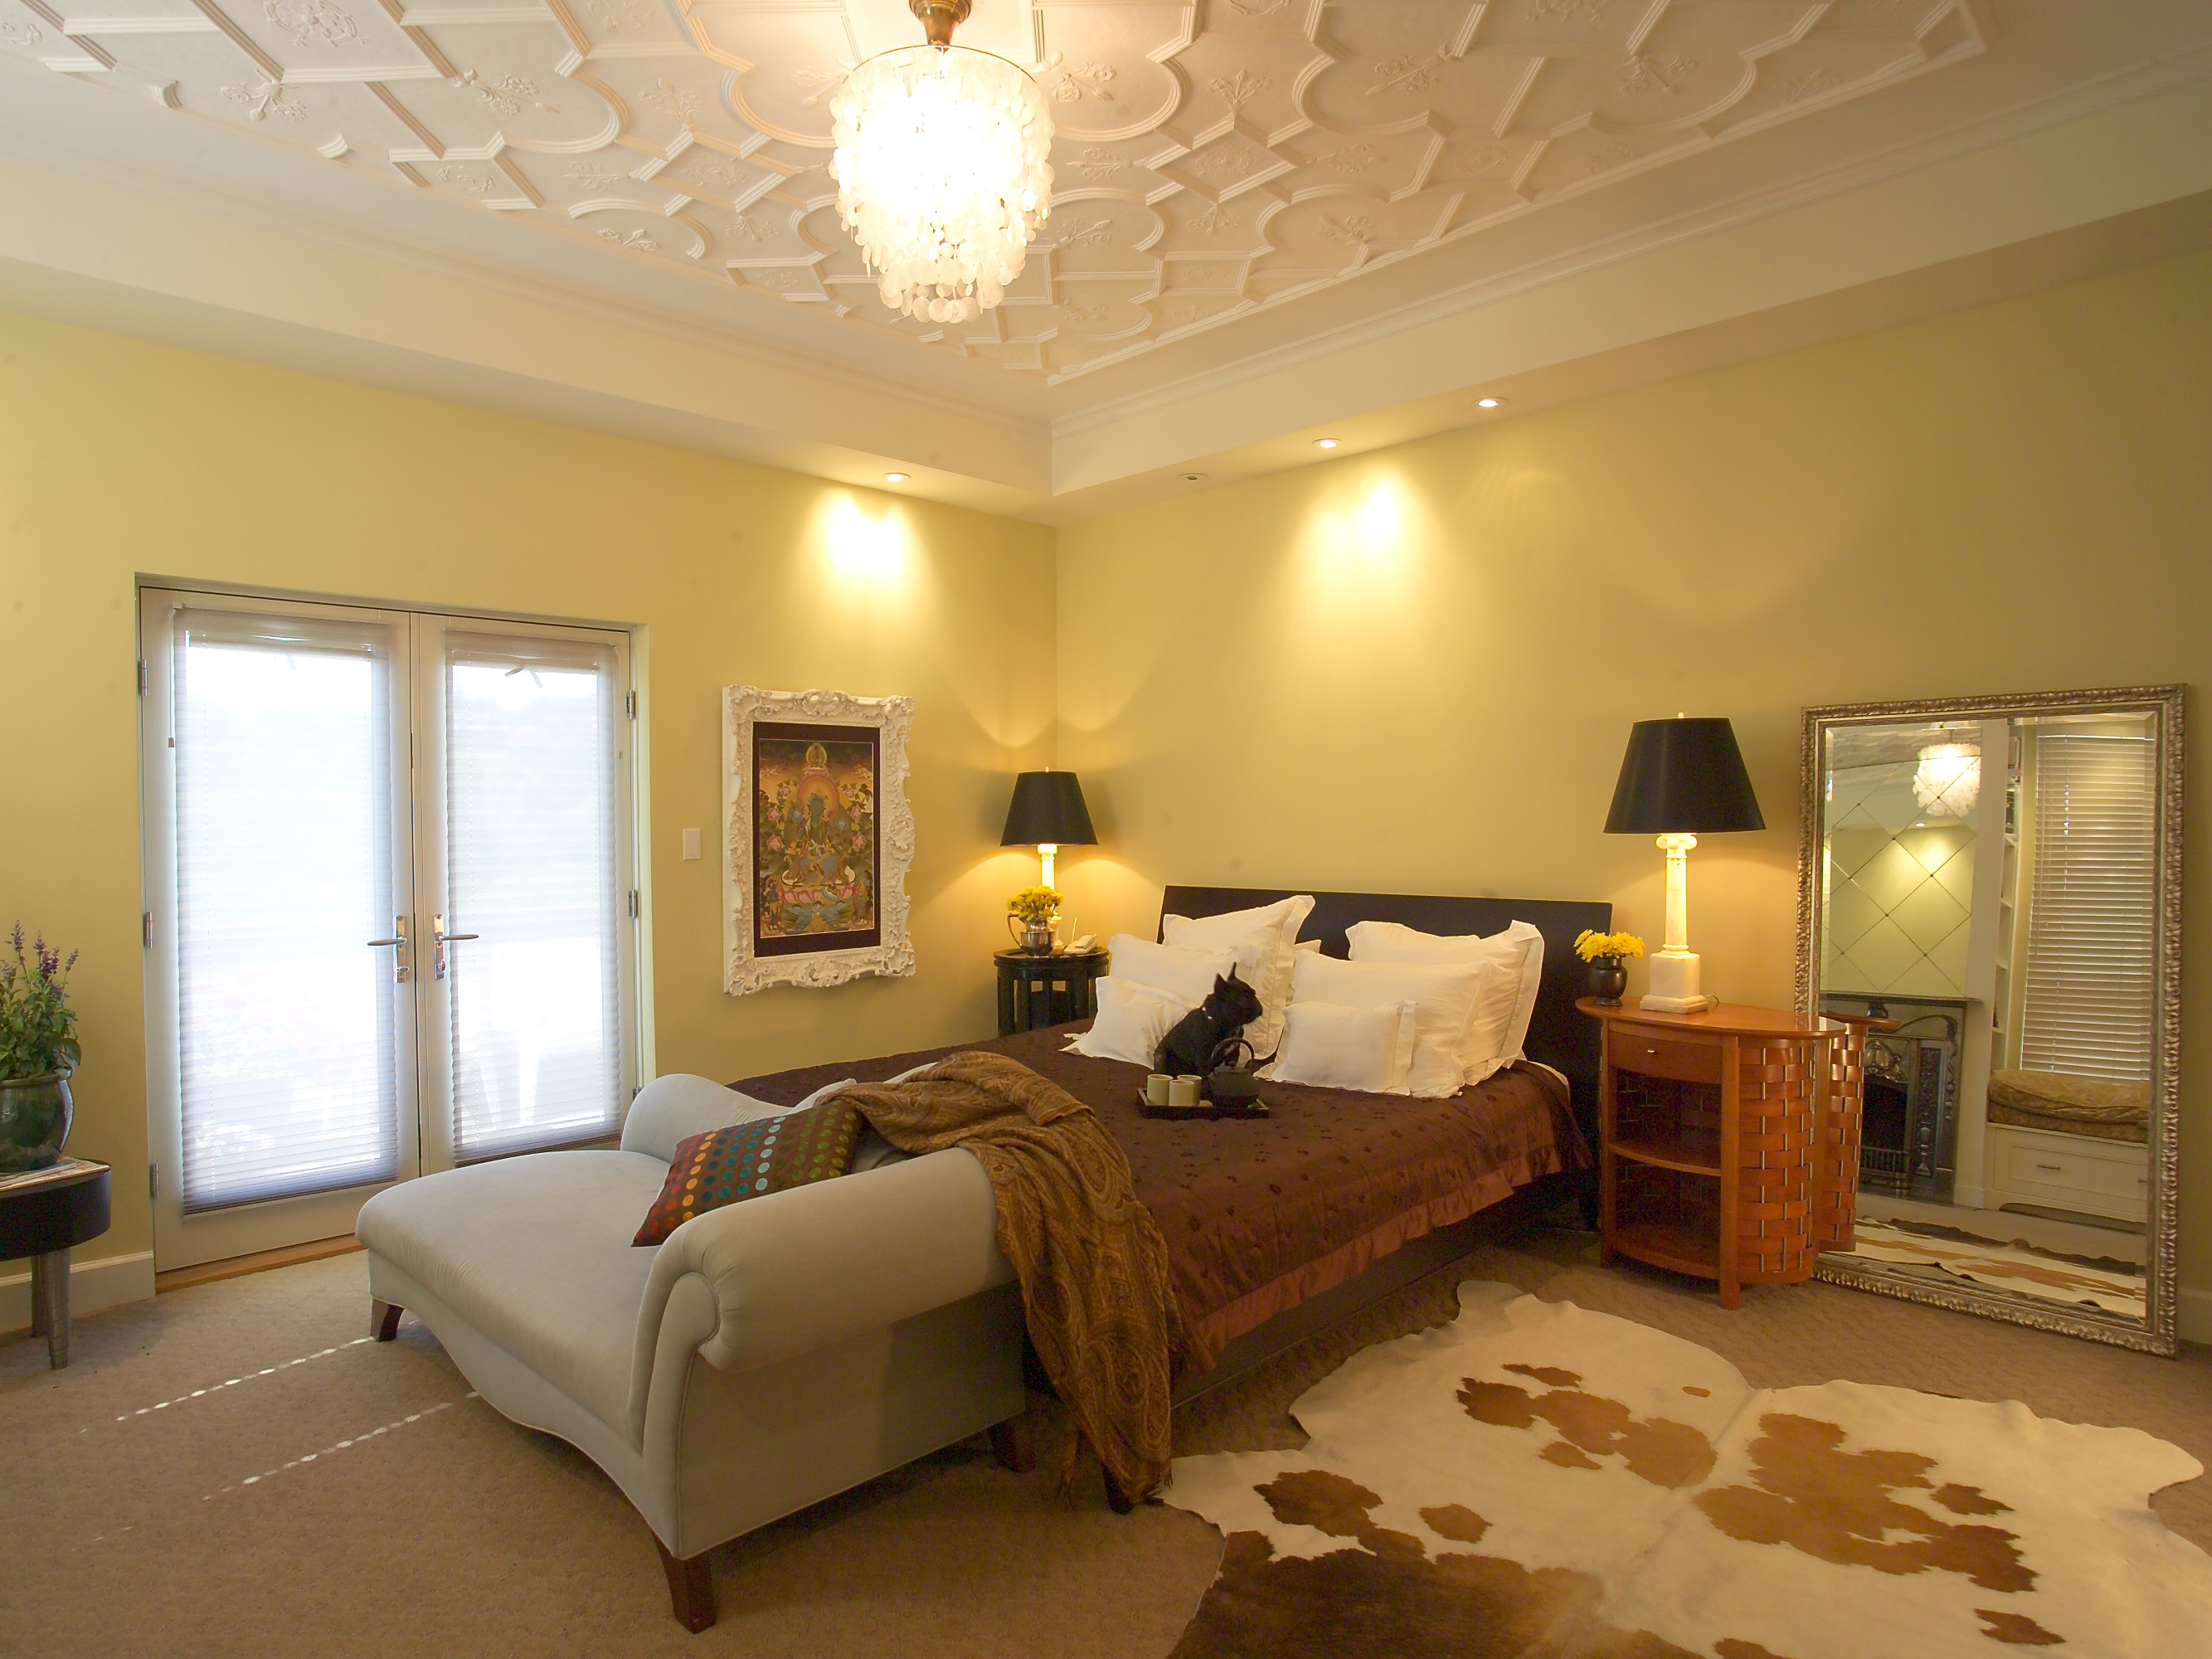 Yellow Bedroom With Textured Tray Ceiling And Cowhide Rug (Image 32 of 32)